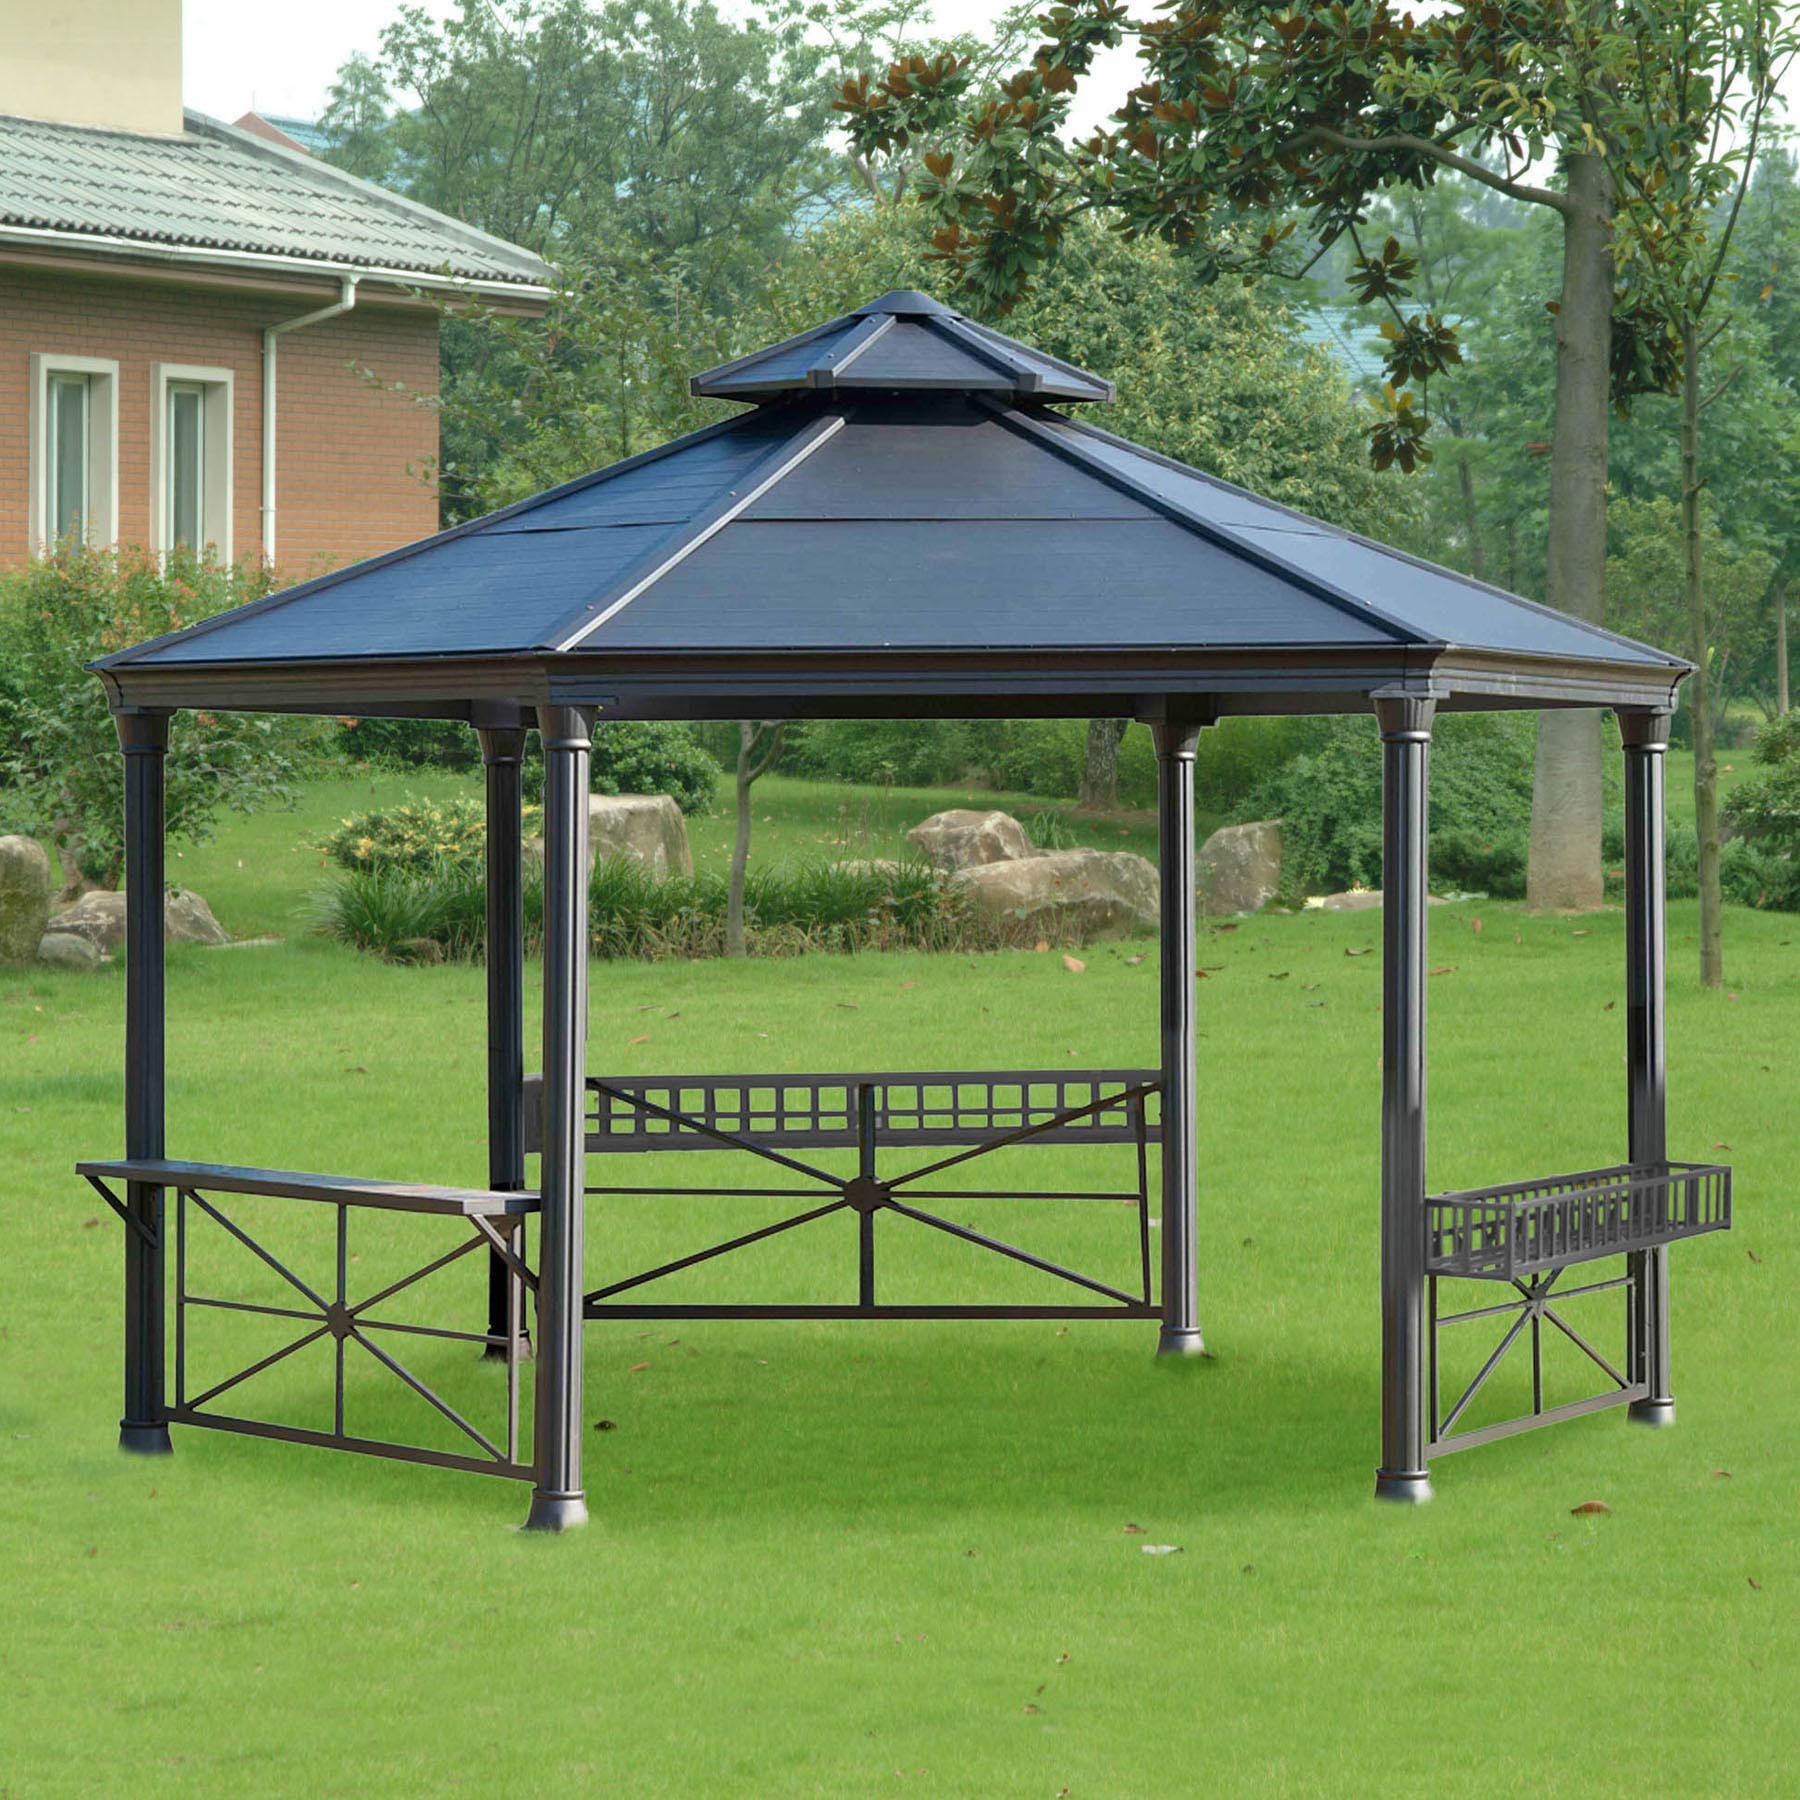 Royal Hardtop Gazebo Craigslist